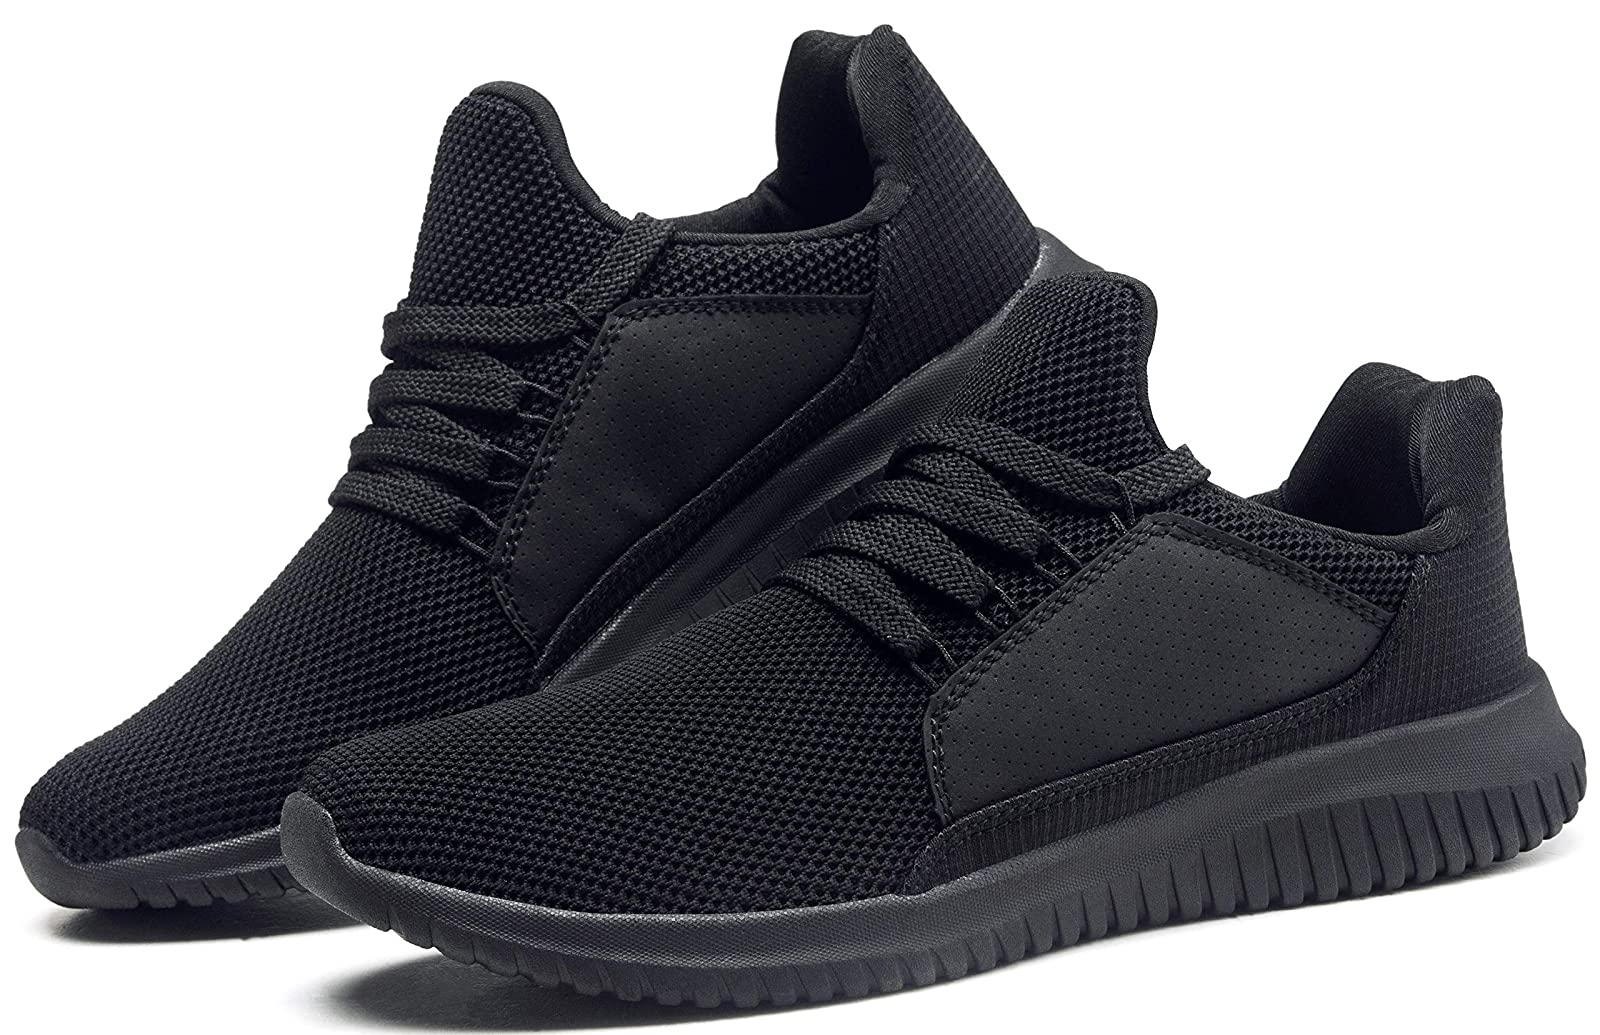 Krystory Casual Running SneakersMen and Women Breathable - 3